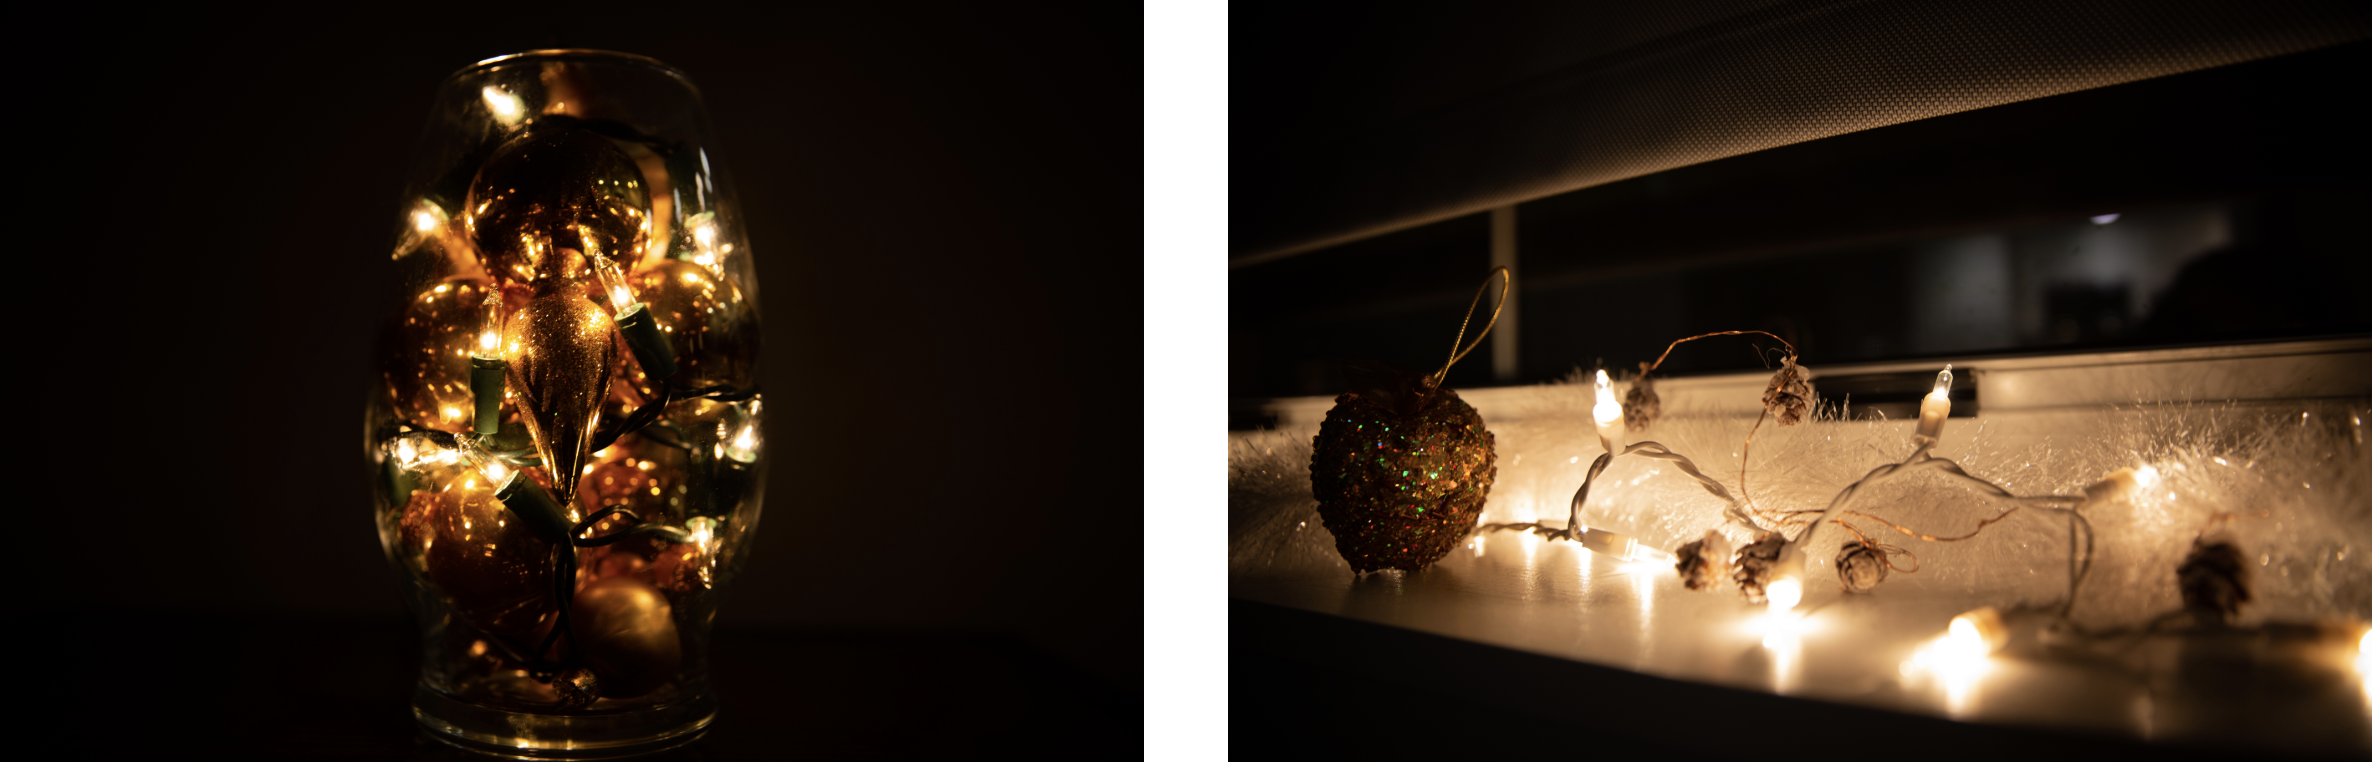 Photo (left) shows lights and ornament in vase, while photo (right) shows string lights and decorations on windowsill.